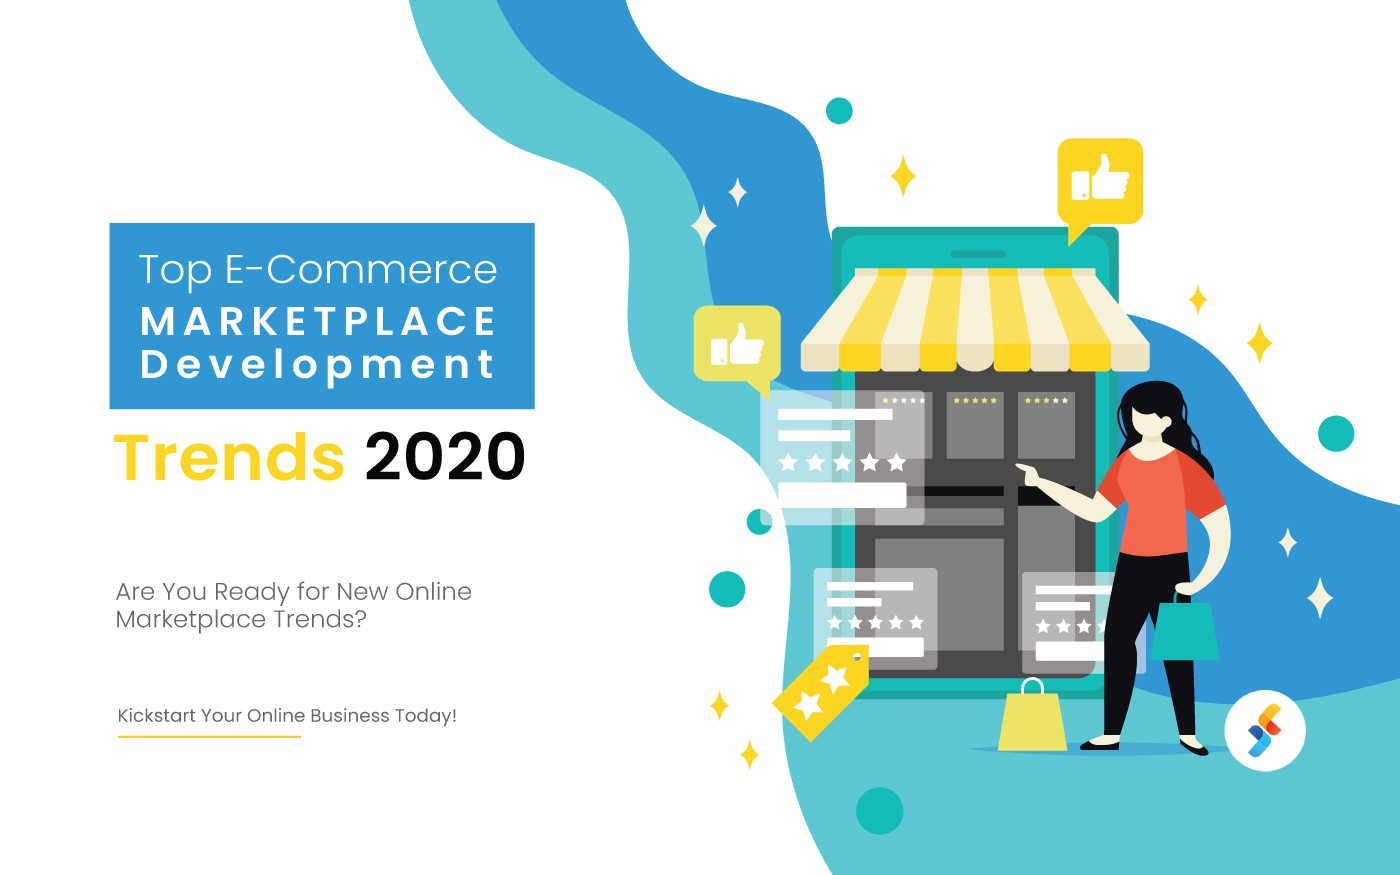 Top-E-Commerce Marketplace Development Trends 2020